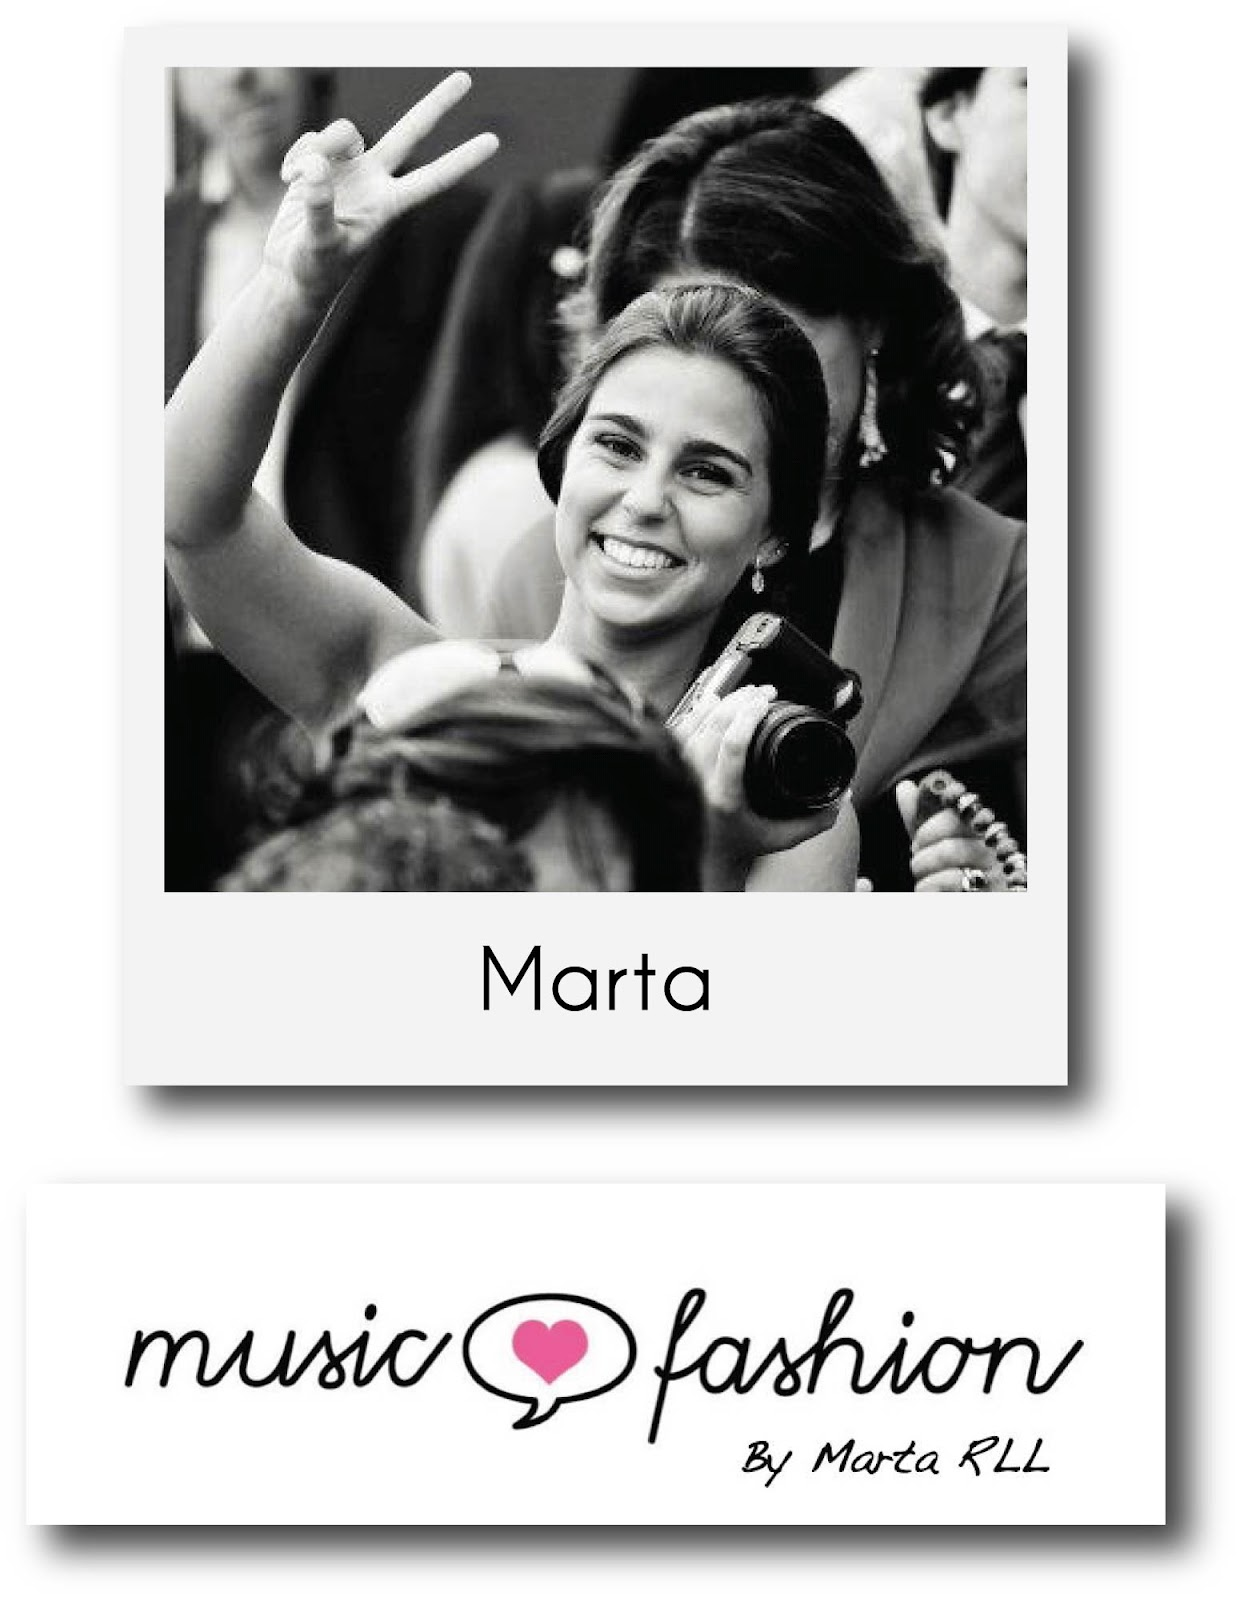 music loves fashion Berlin blog for news, events, startups, entrepreneurs, performers, food, restaurants, things to do, beer, burgers, love, shopping, fashion, lifestyle and anything .